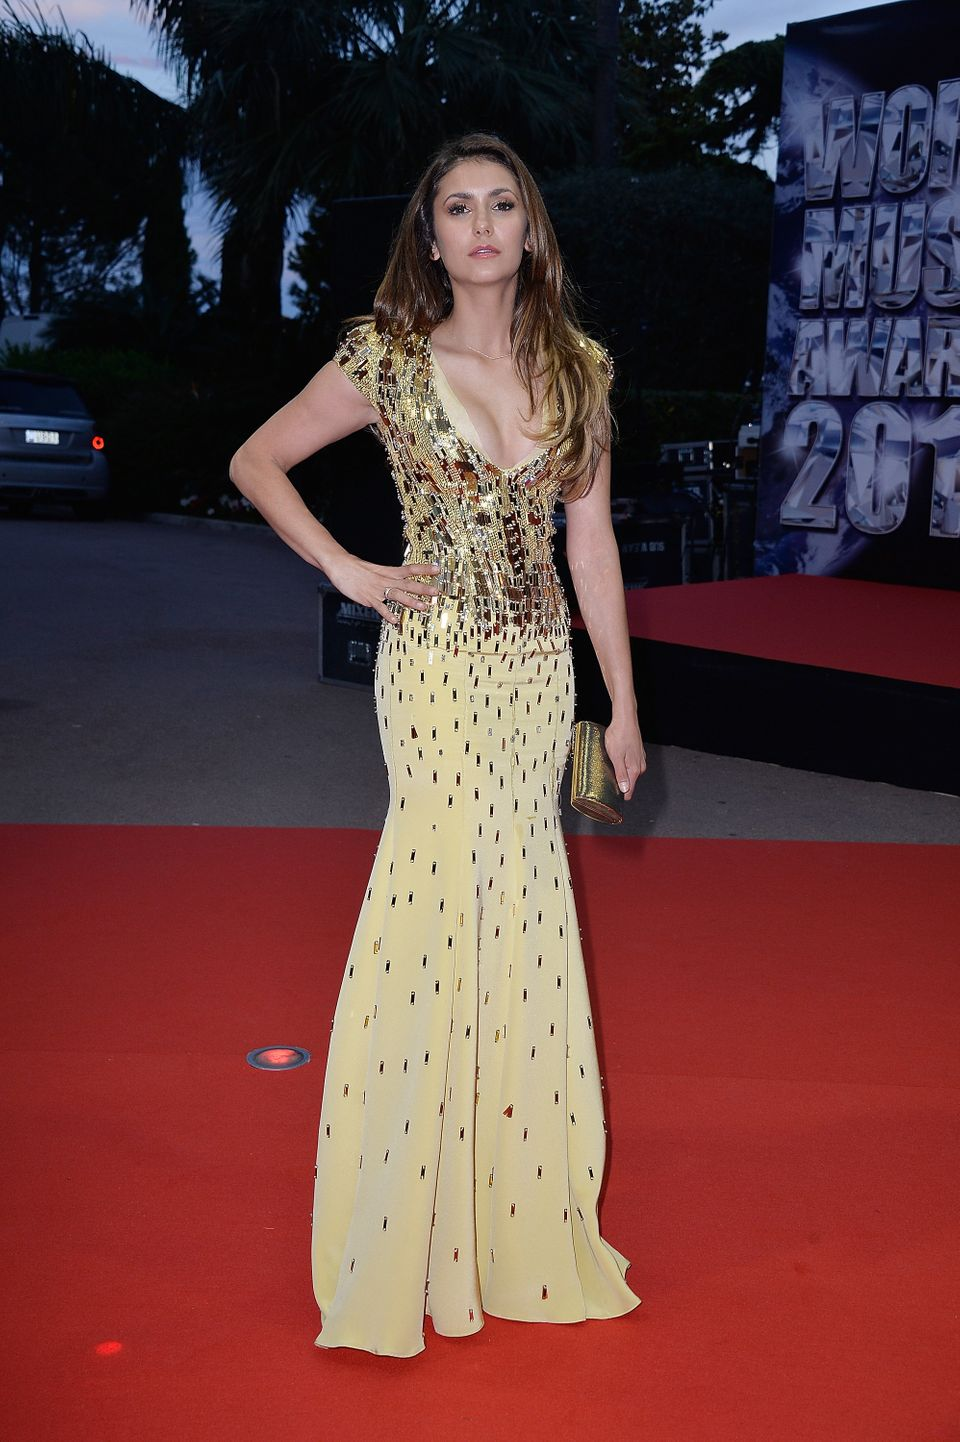 MONTE-CARLO, MONACO - MAY 27:  Actress Nina Dobrev arrives the World Music Awards at Sporting Monte-Carlo on May 27, 2014 in